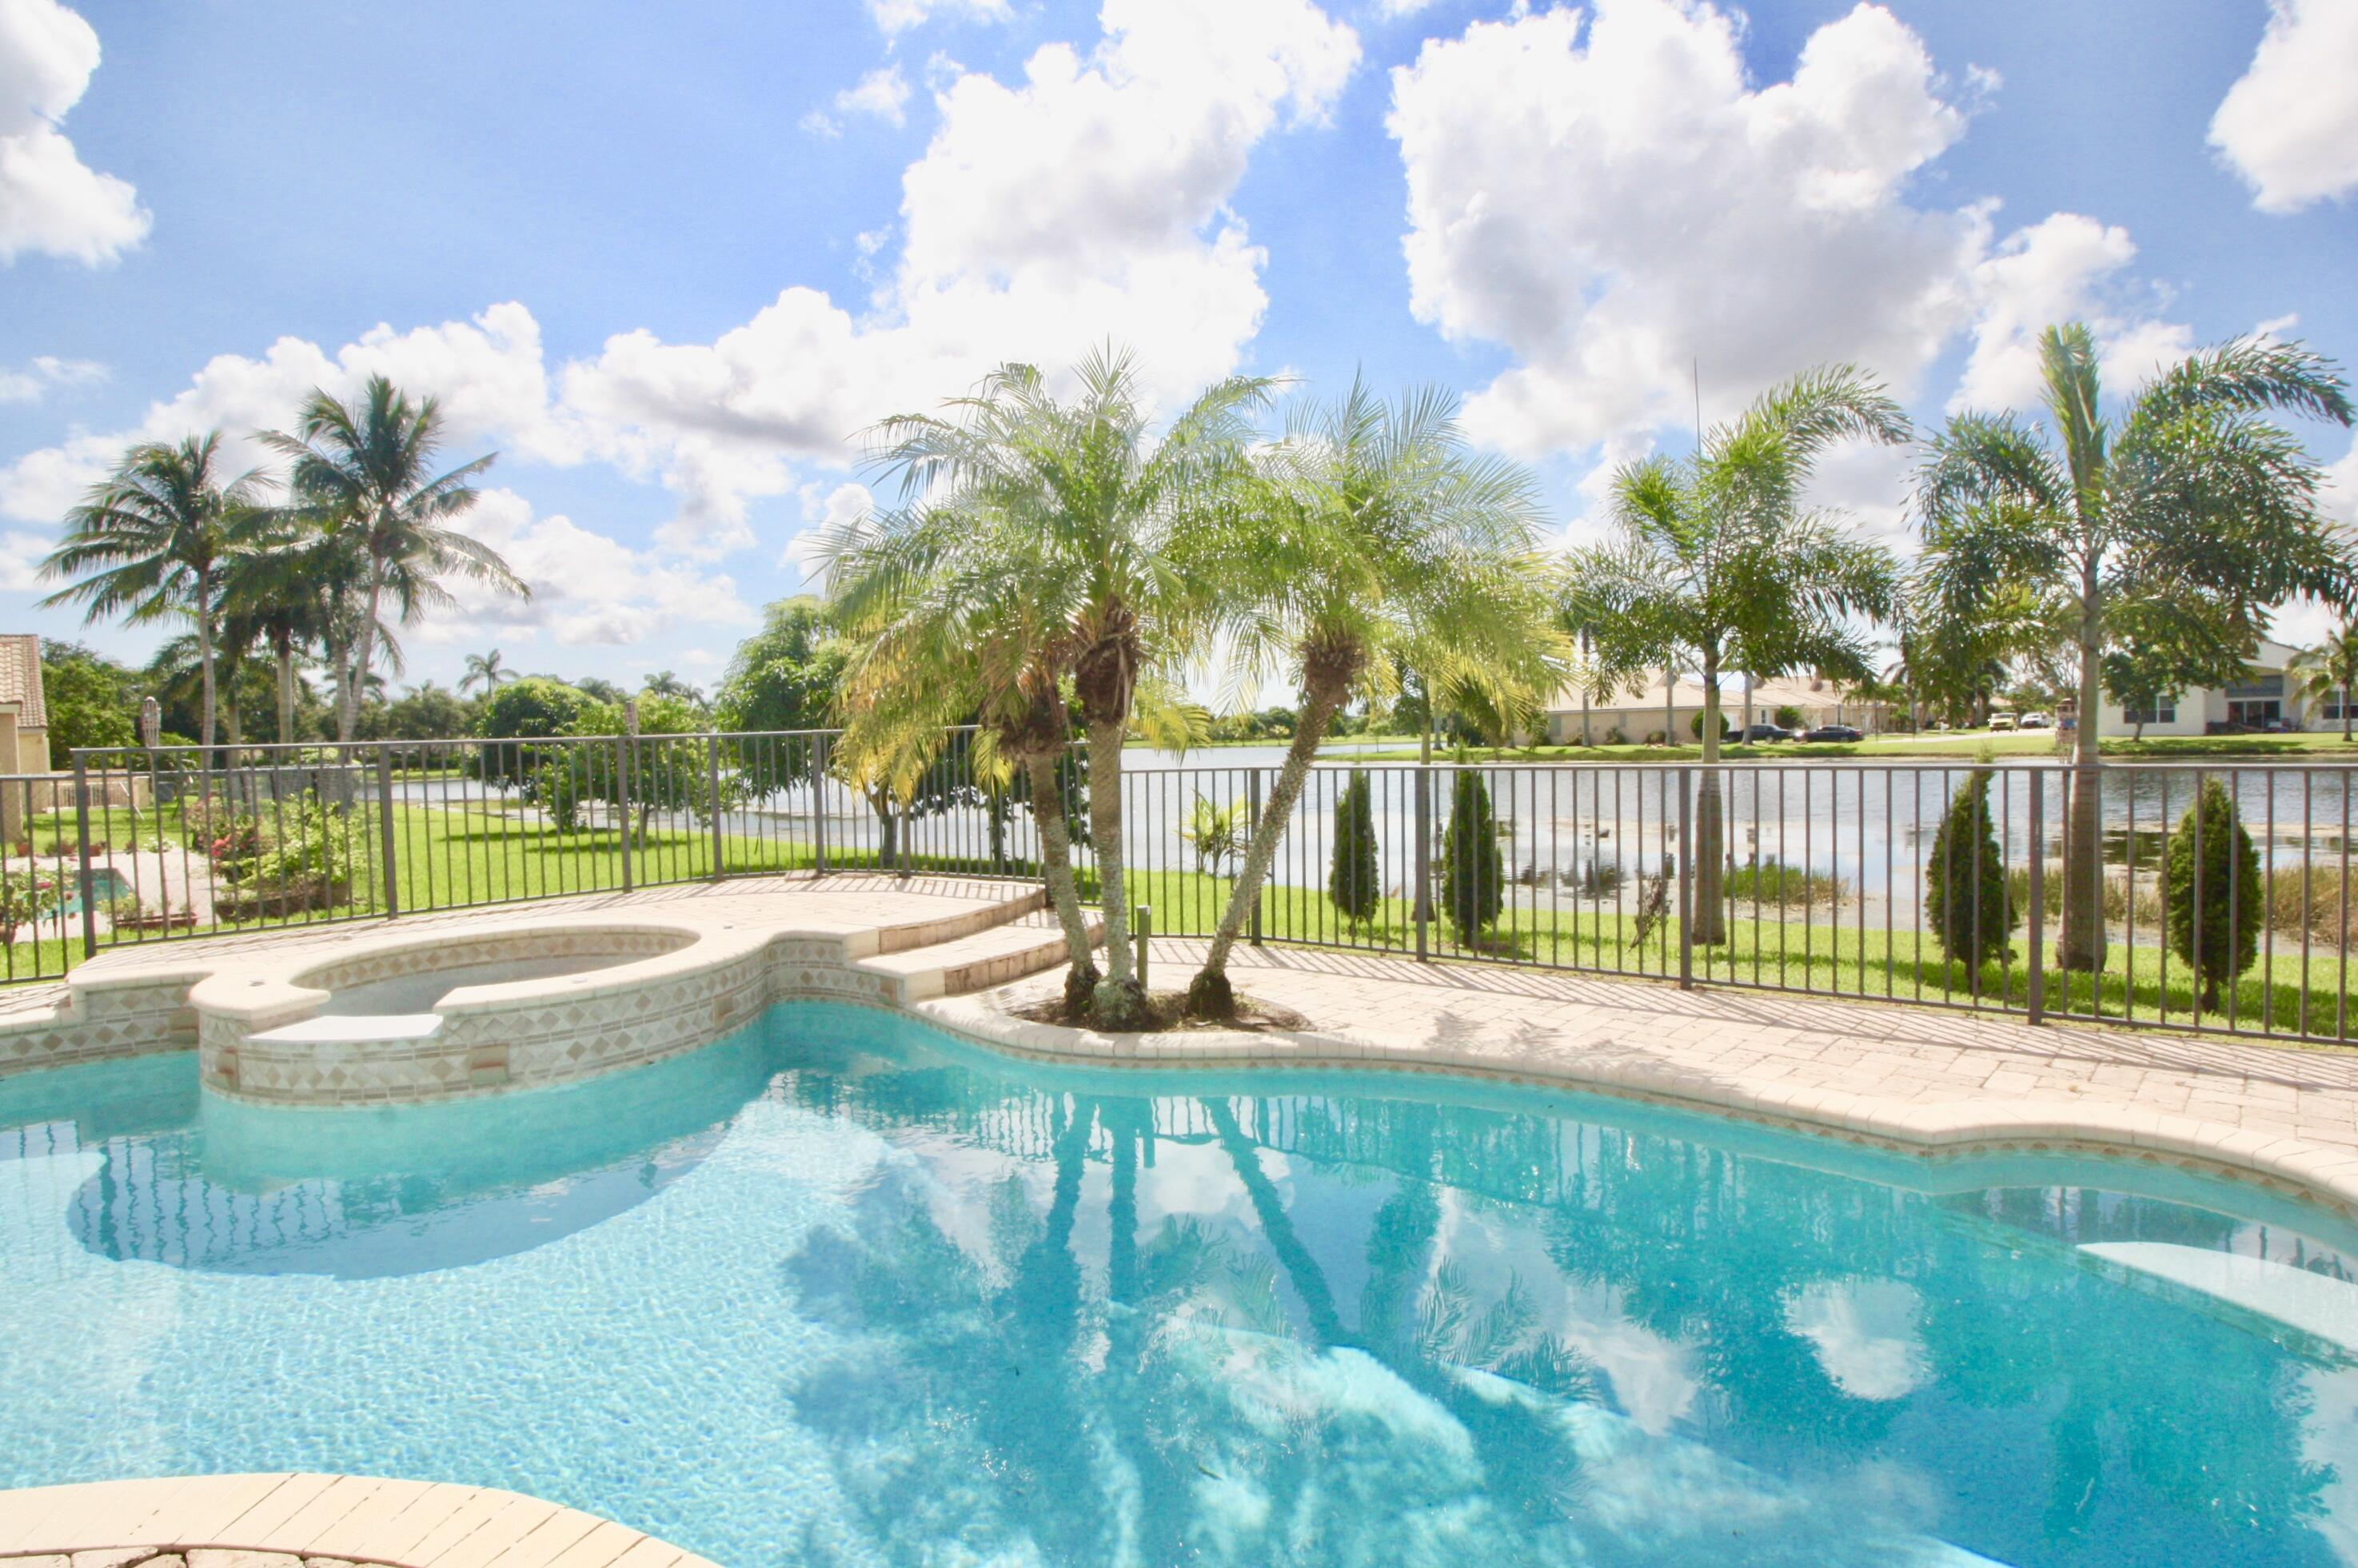 9336  Cove Point Circle  For Sale 10747341, FL